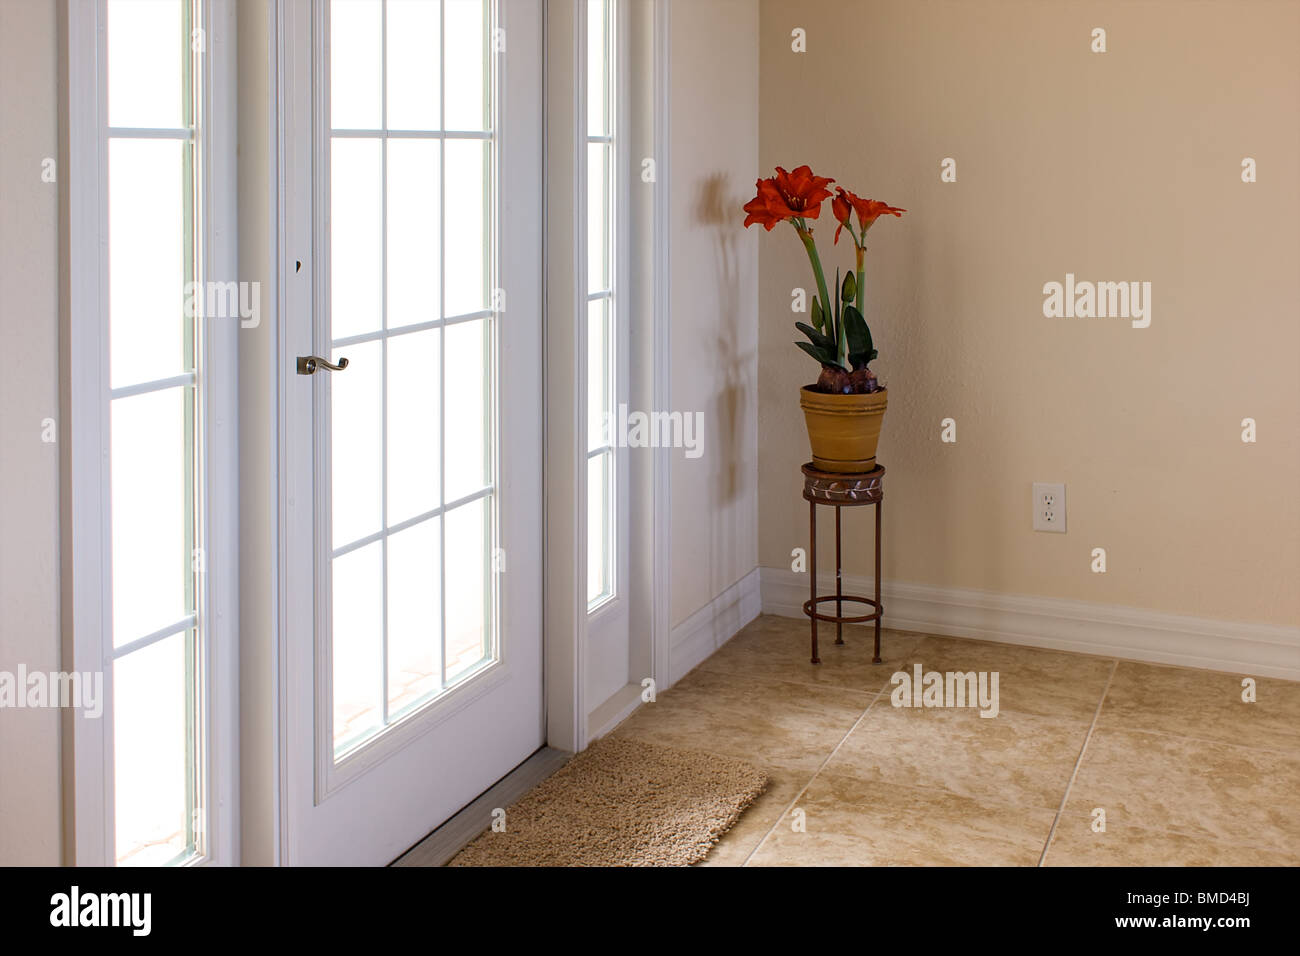 bright and airy image of front entry to house showing white door with sunlight streaming through and a plant stand Stock Photo